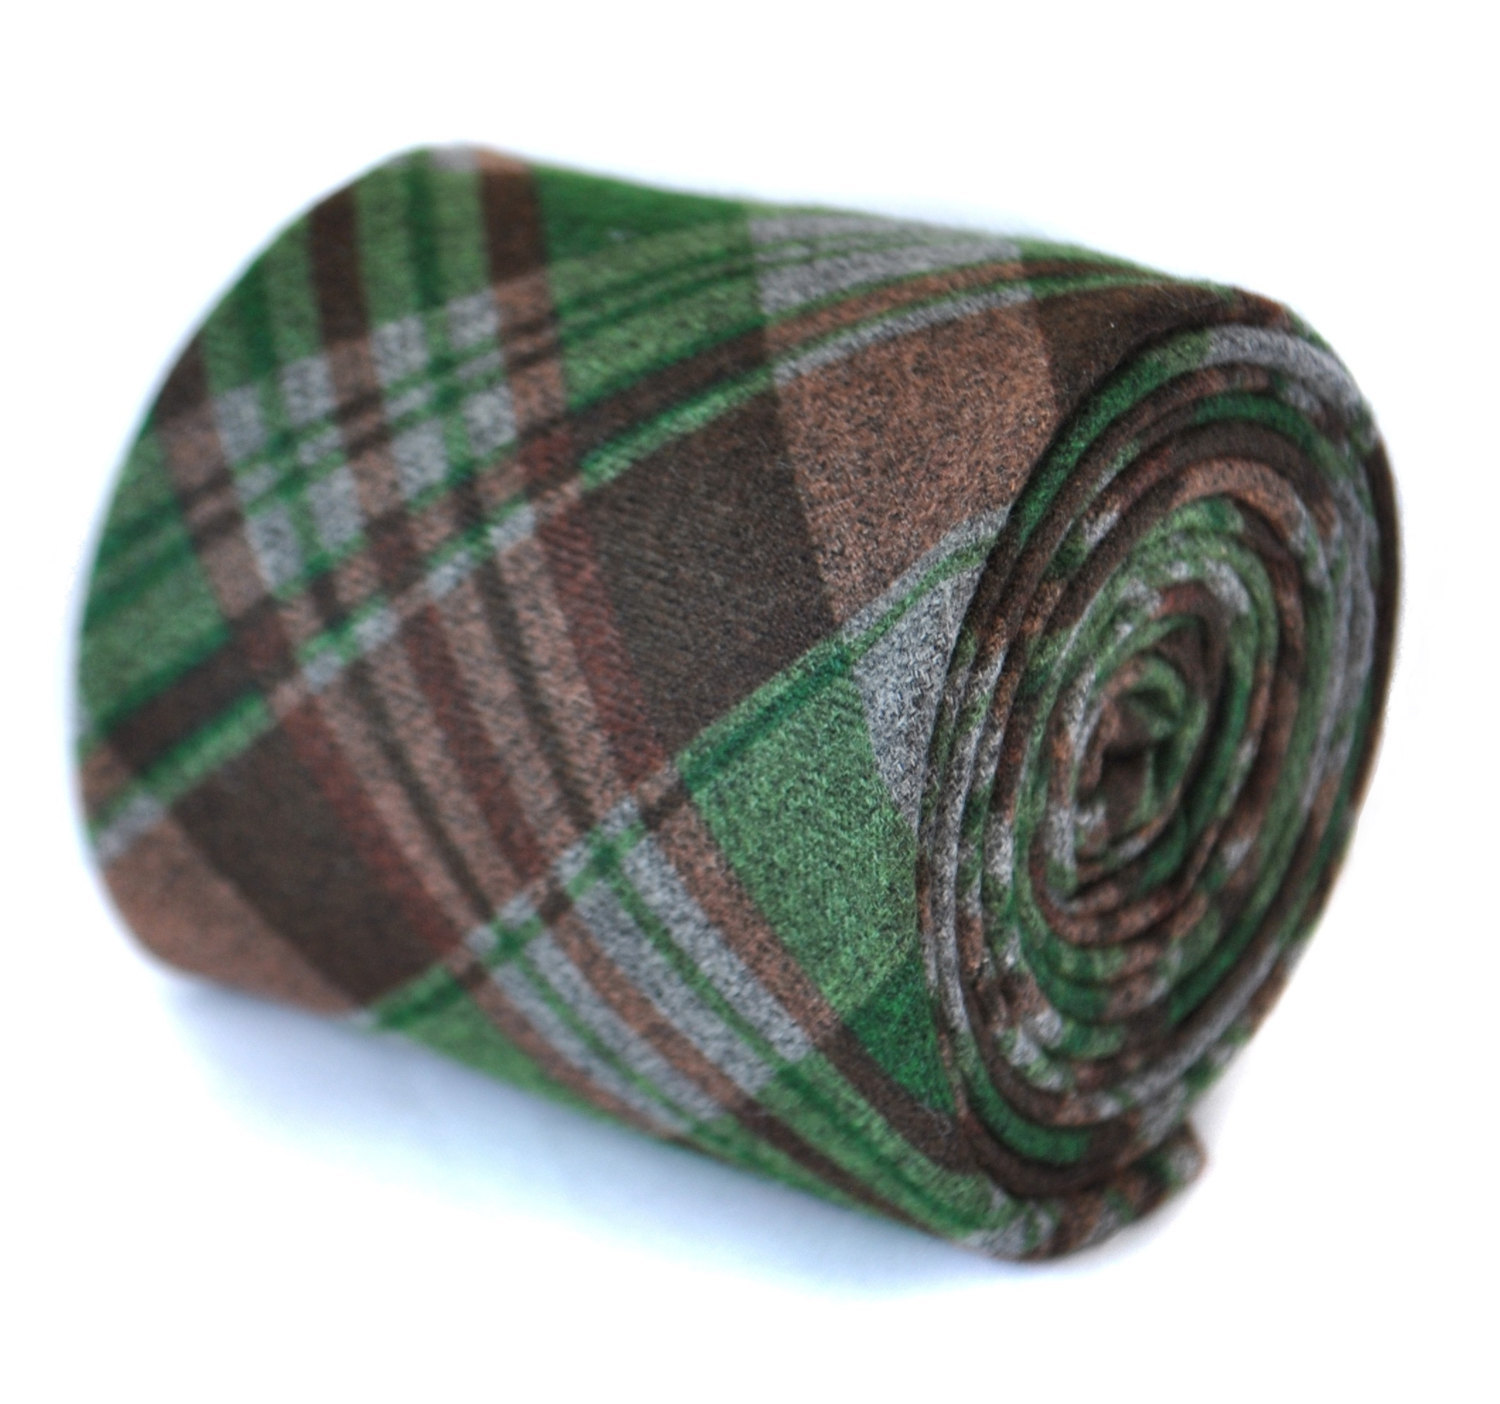 green and brown 100% wool tweed checkered plaid tie by Frederick Thomas FT2081